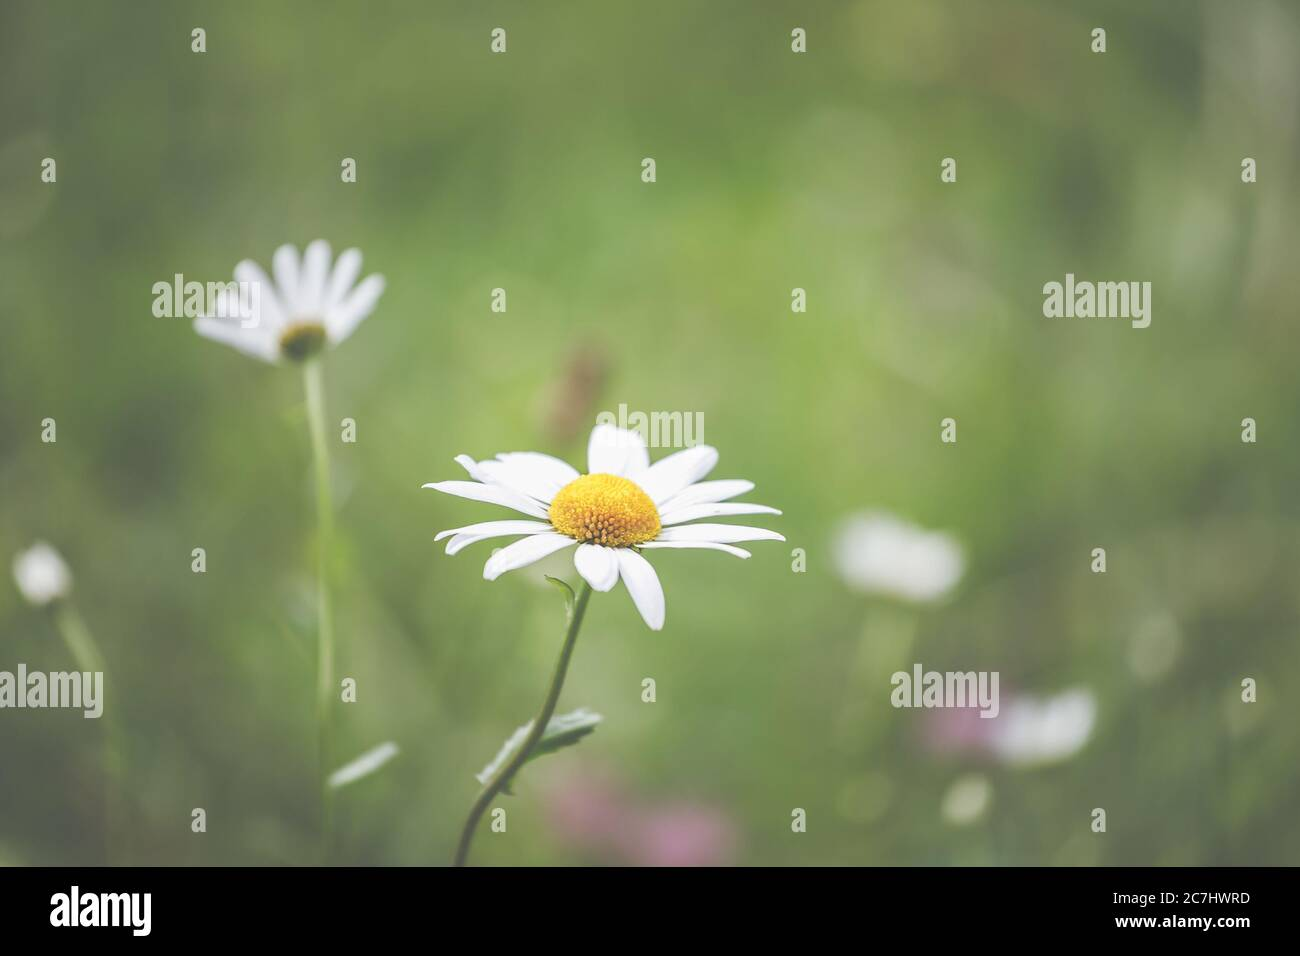 Spring - The garden blooms in the sunlight. Daisies and daisies in the meadow. Stock Photo